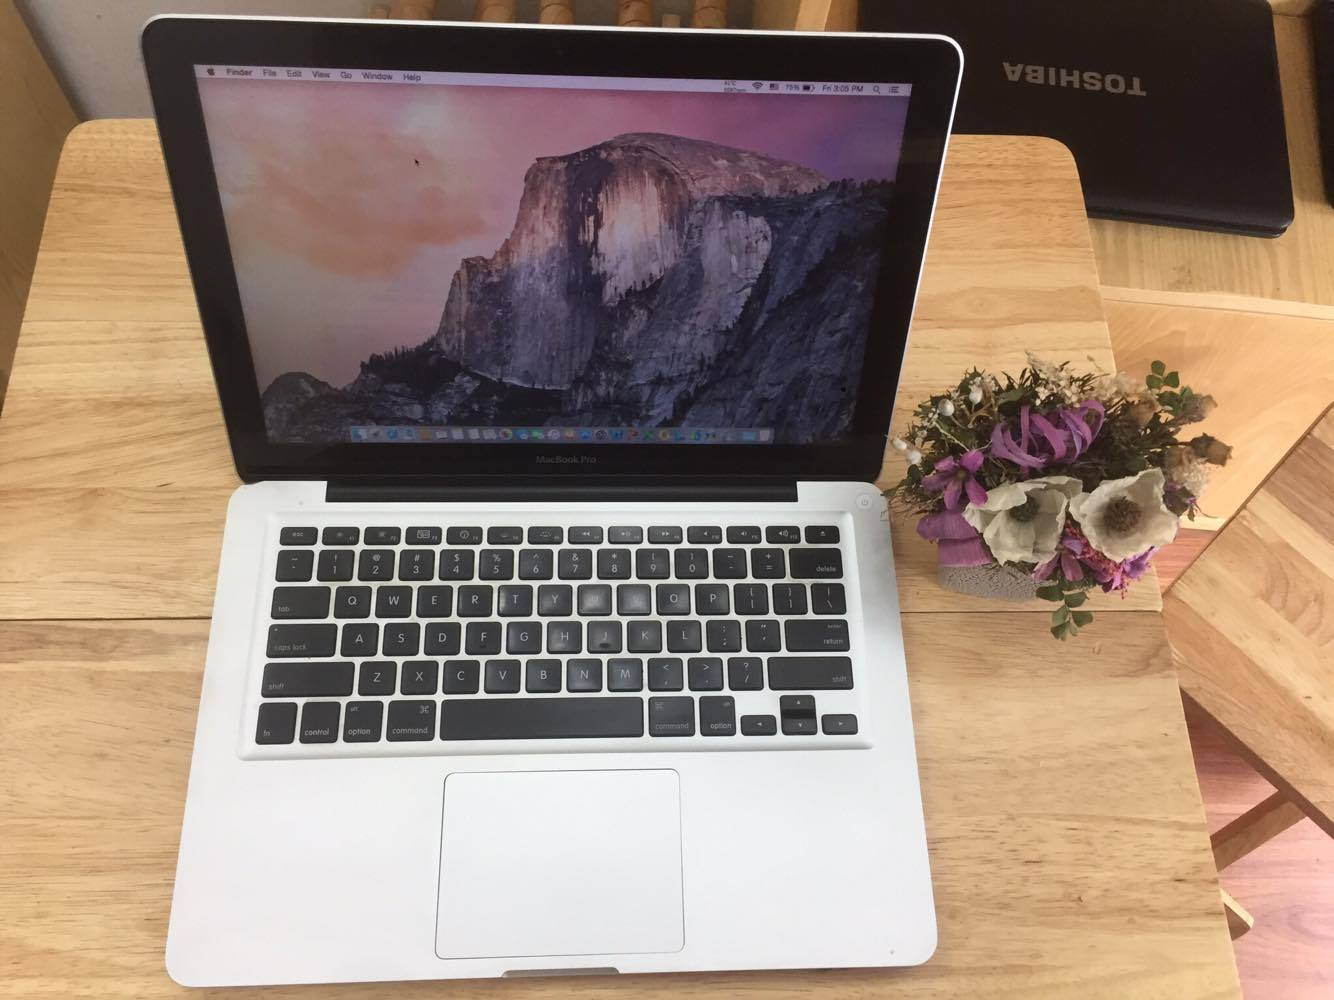 Macbook Pro MD313 Core i5 2.4GHZ , Ram 4GB , HDD 500GB , 13.3 inch – Late 2011